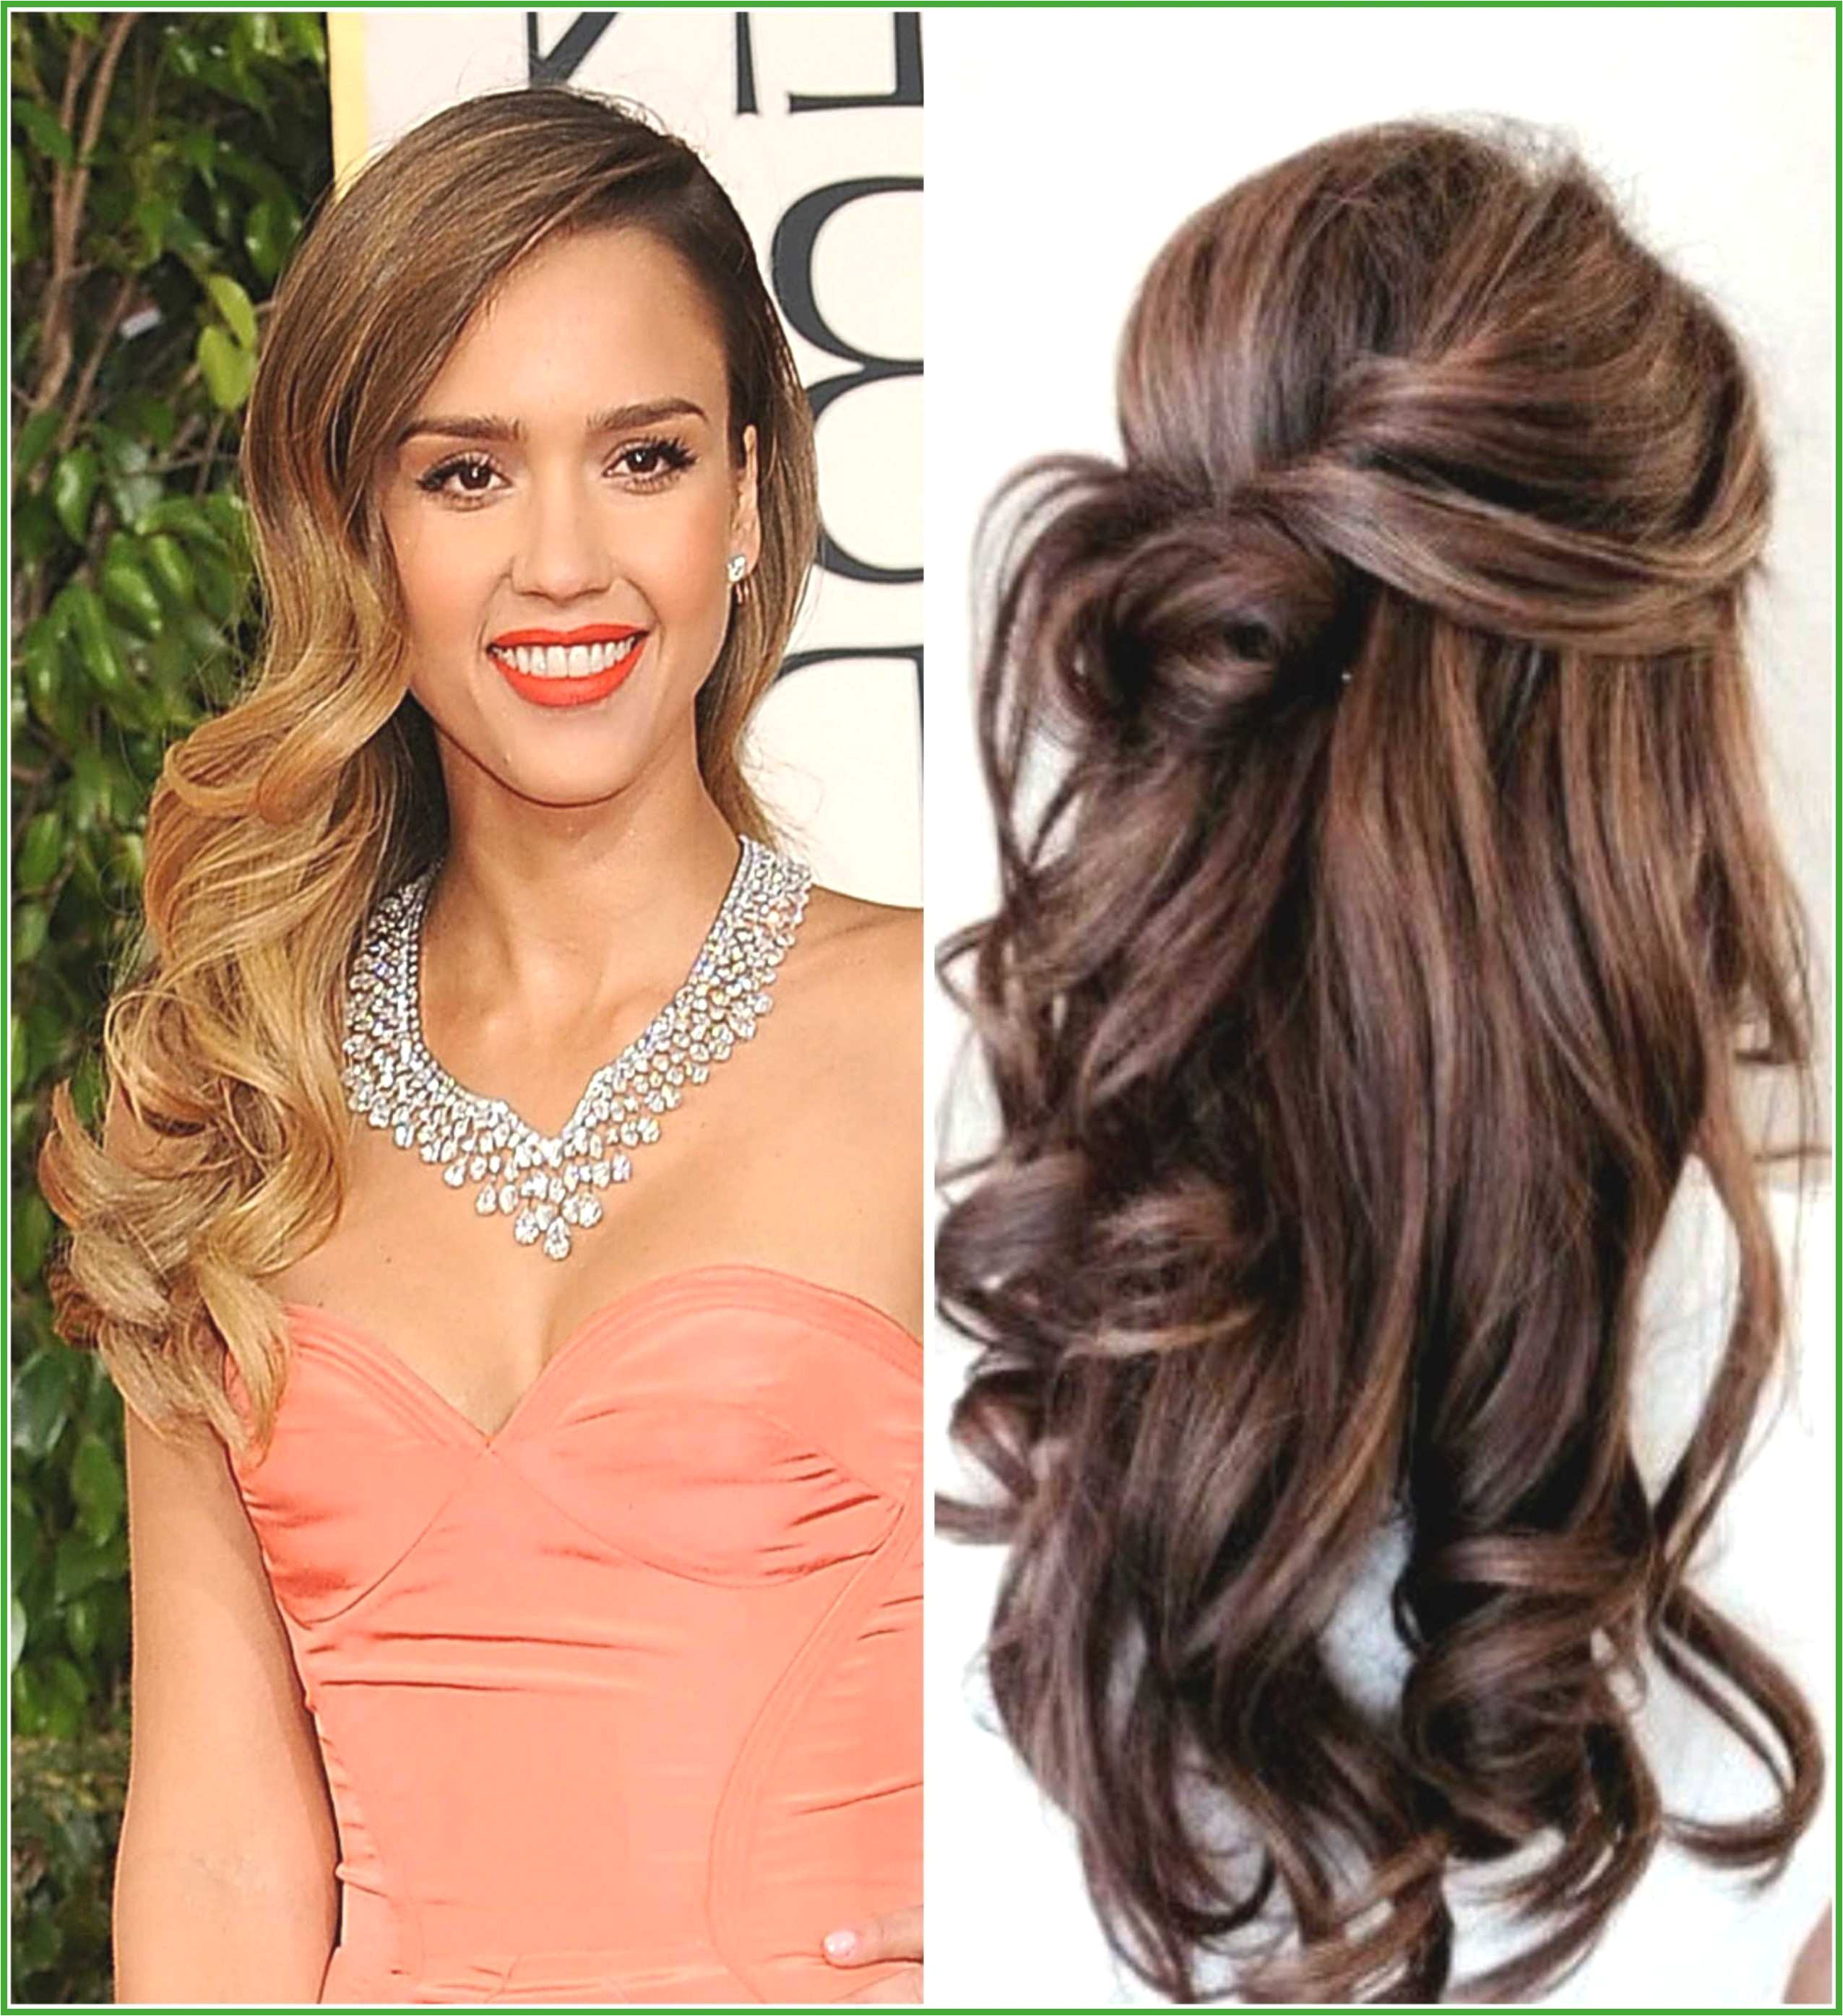 Hairstyles with some Hair Up American Girl Hairstyles New New Braid Hairstyles 2015 Mohawk